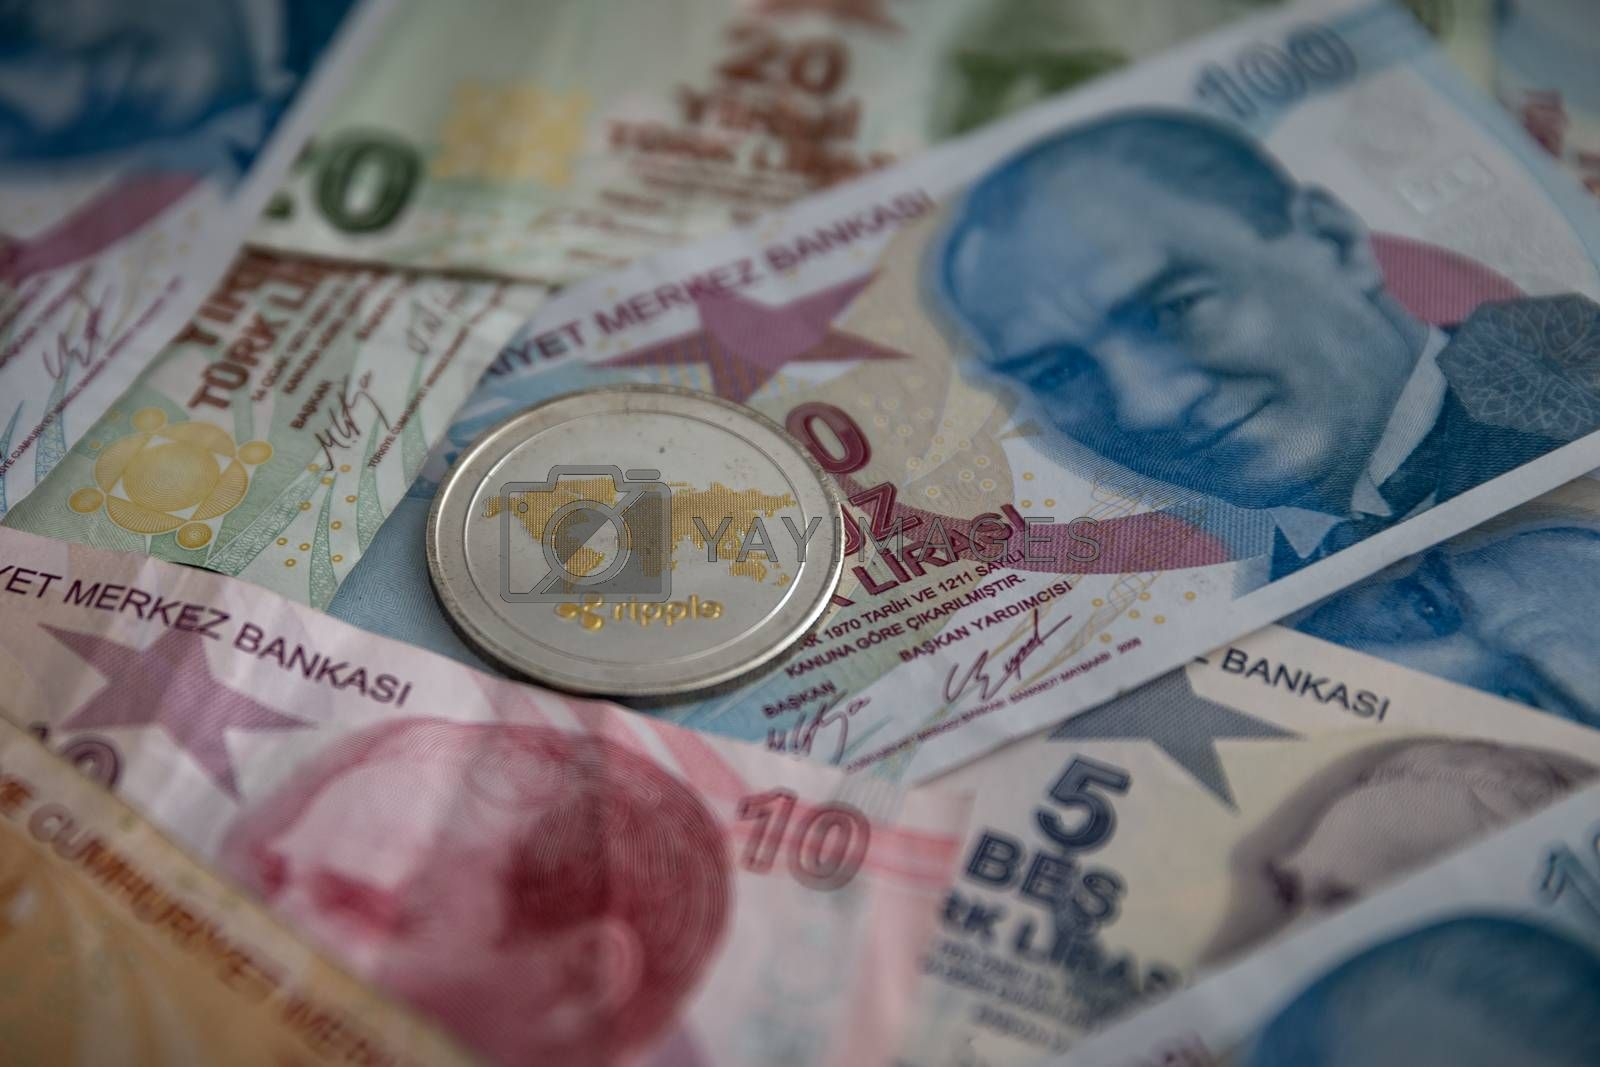 Bunch of Various Turkish Lira Banknotes and Ripple Coin